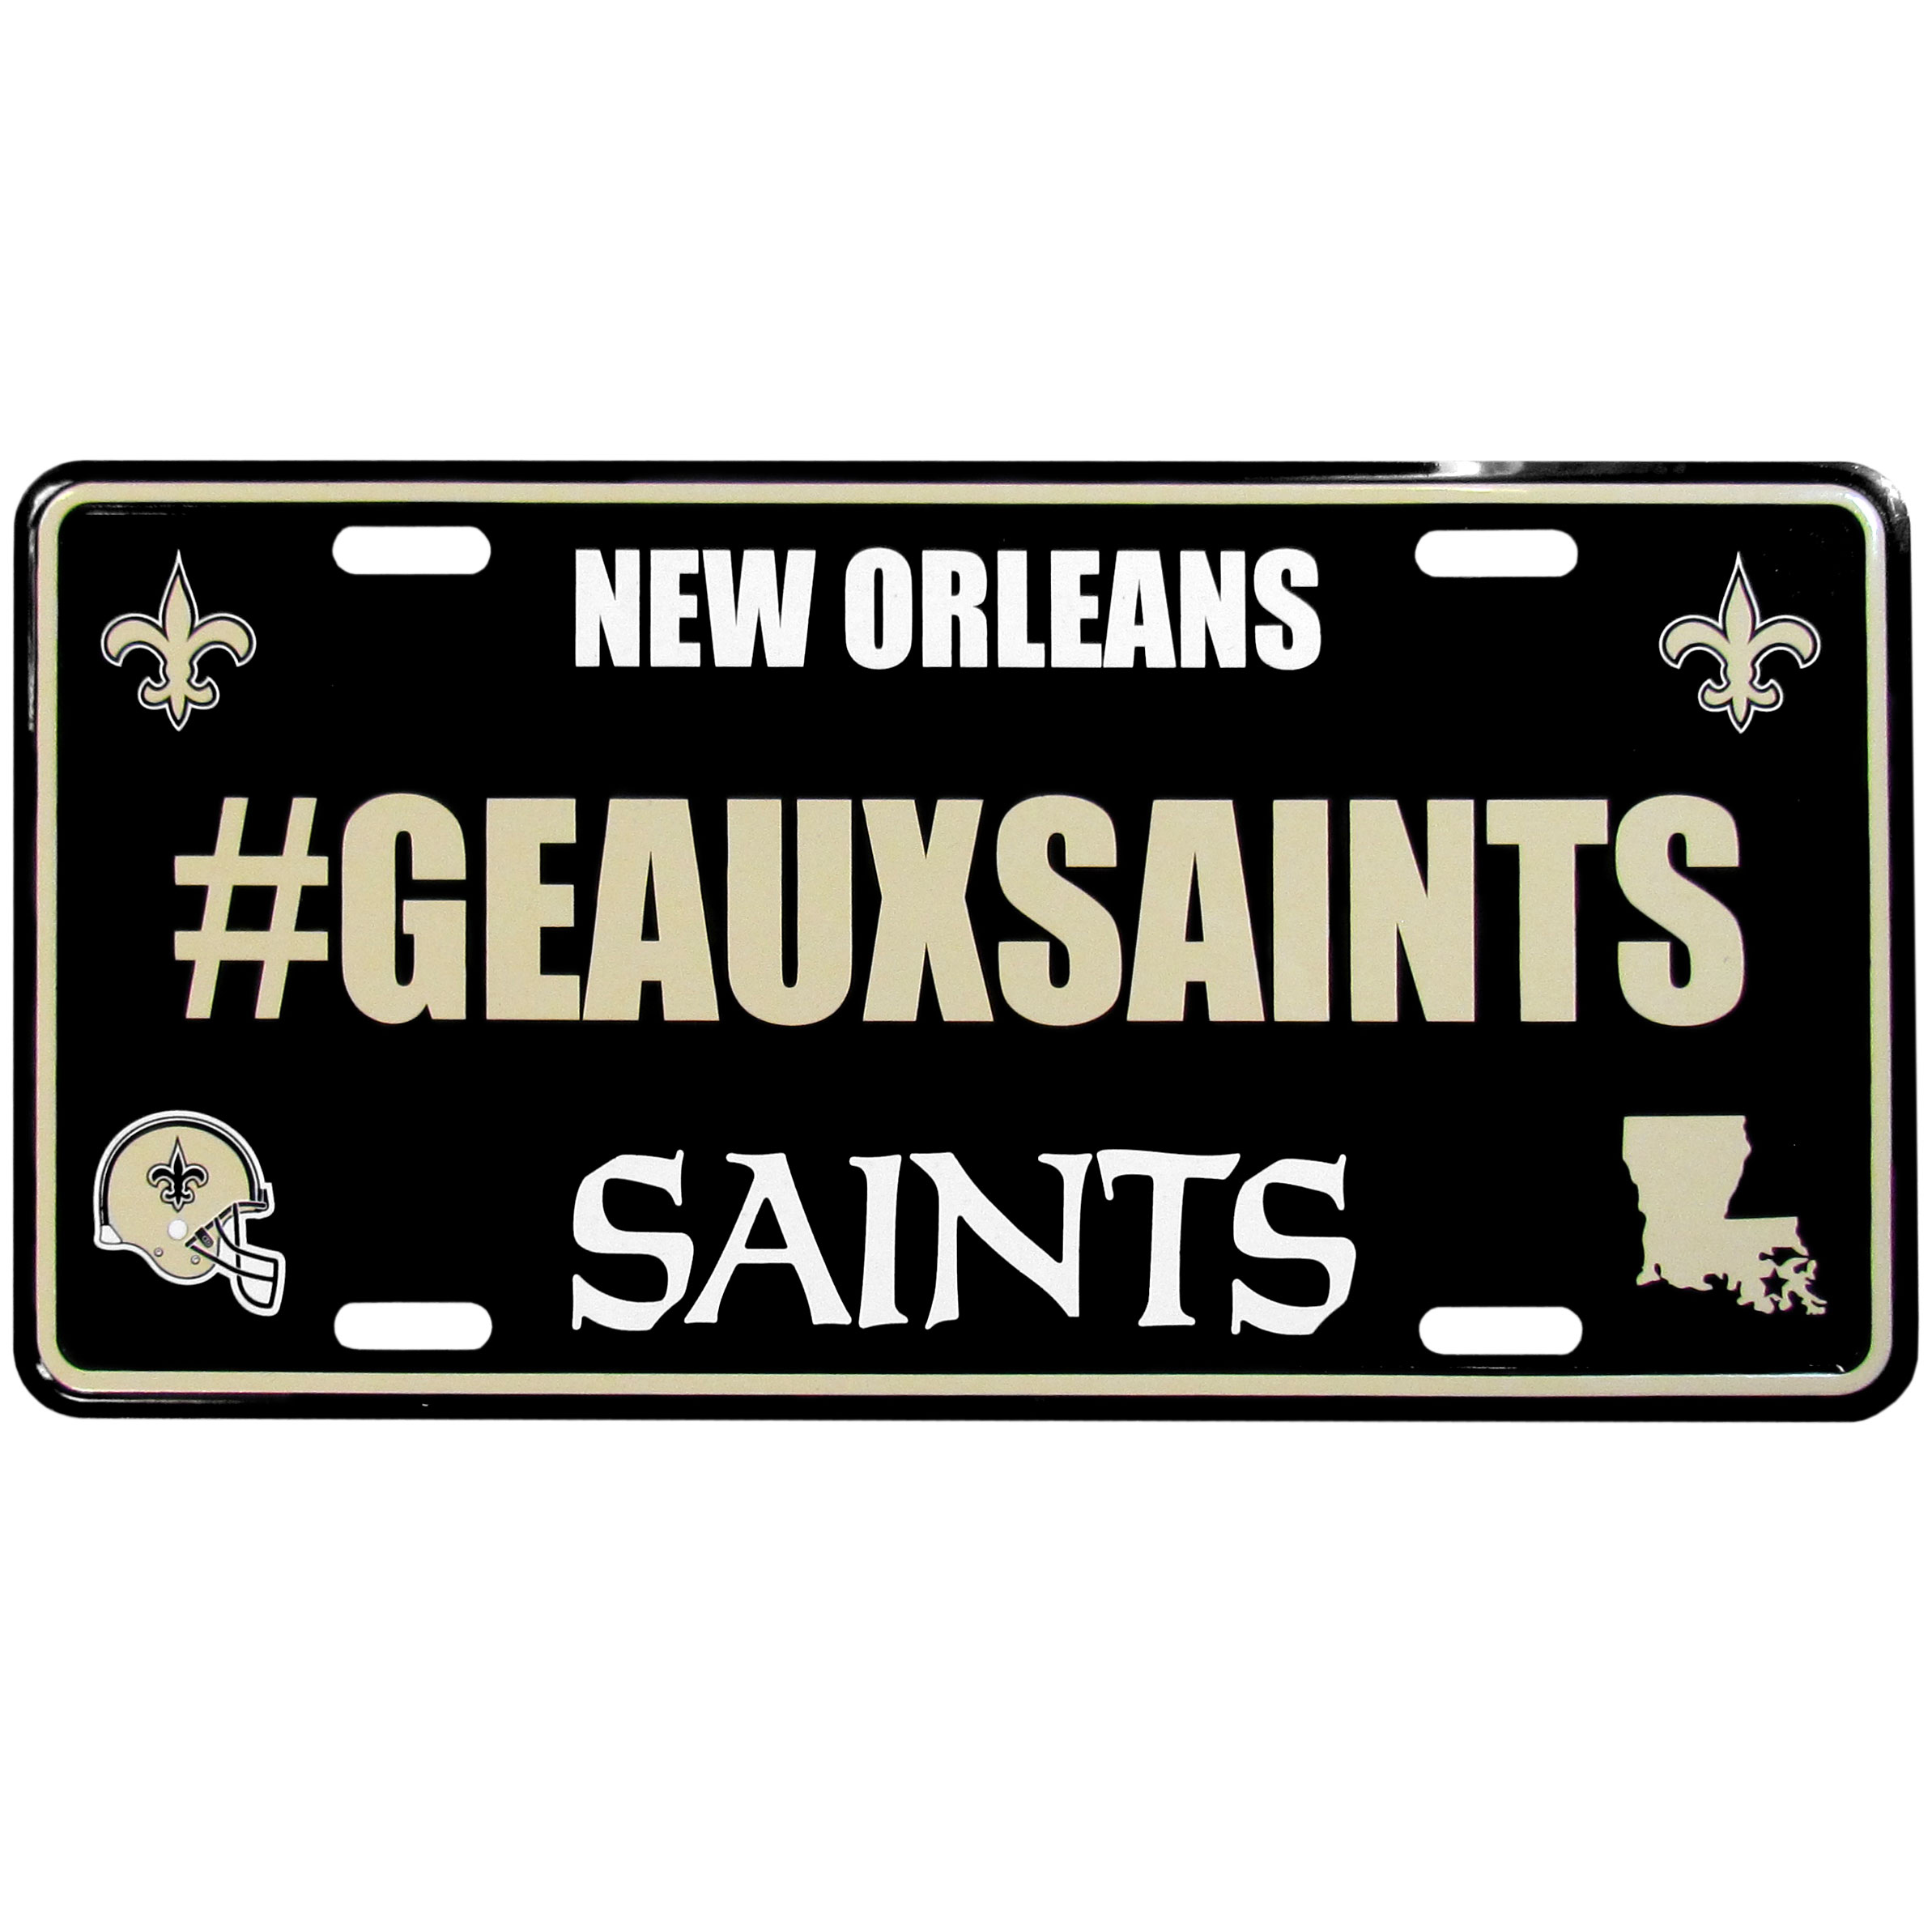 New Orleans Saints Hashtag License Plate - It's a hashtag world! Celebrate the New Orleans Saints with this stamped aluminum license plate with the most popular team hashtag! This bright license plate will look great on your vehicle or mounted in your fan cave.